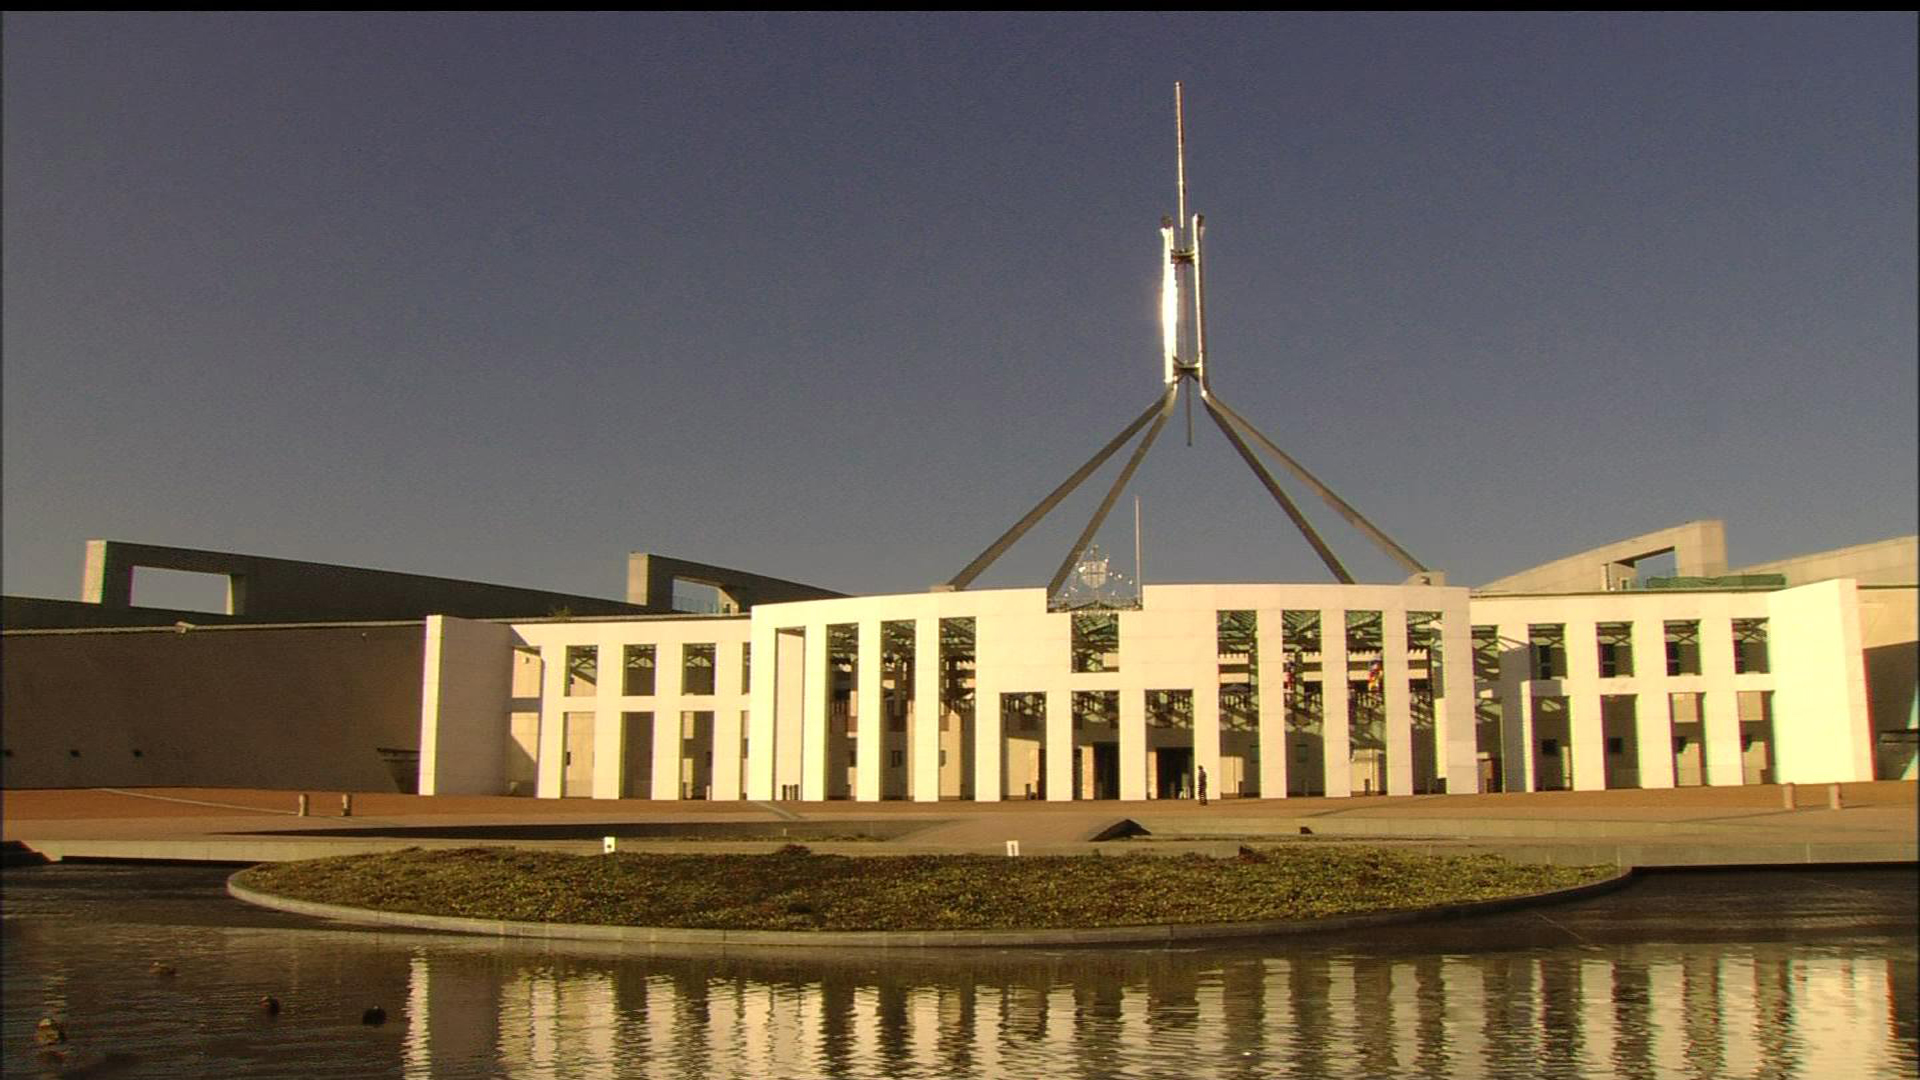 With its giant flag mast, Parliament House, home of the federal government, dominates Capitol Hill, Canberra, Australia. This image is from Wikimedia, and is in the public domain.